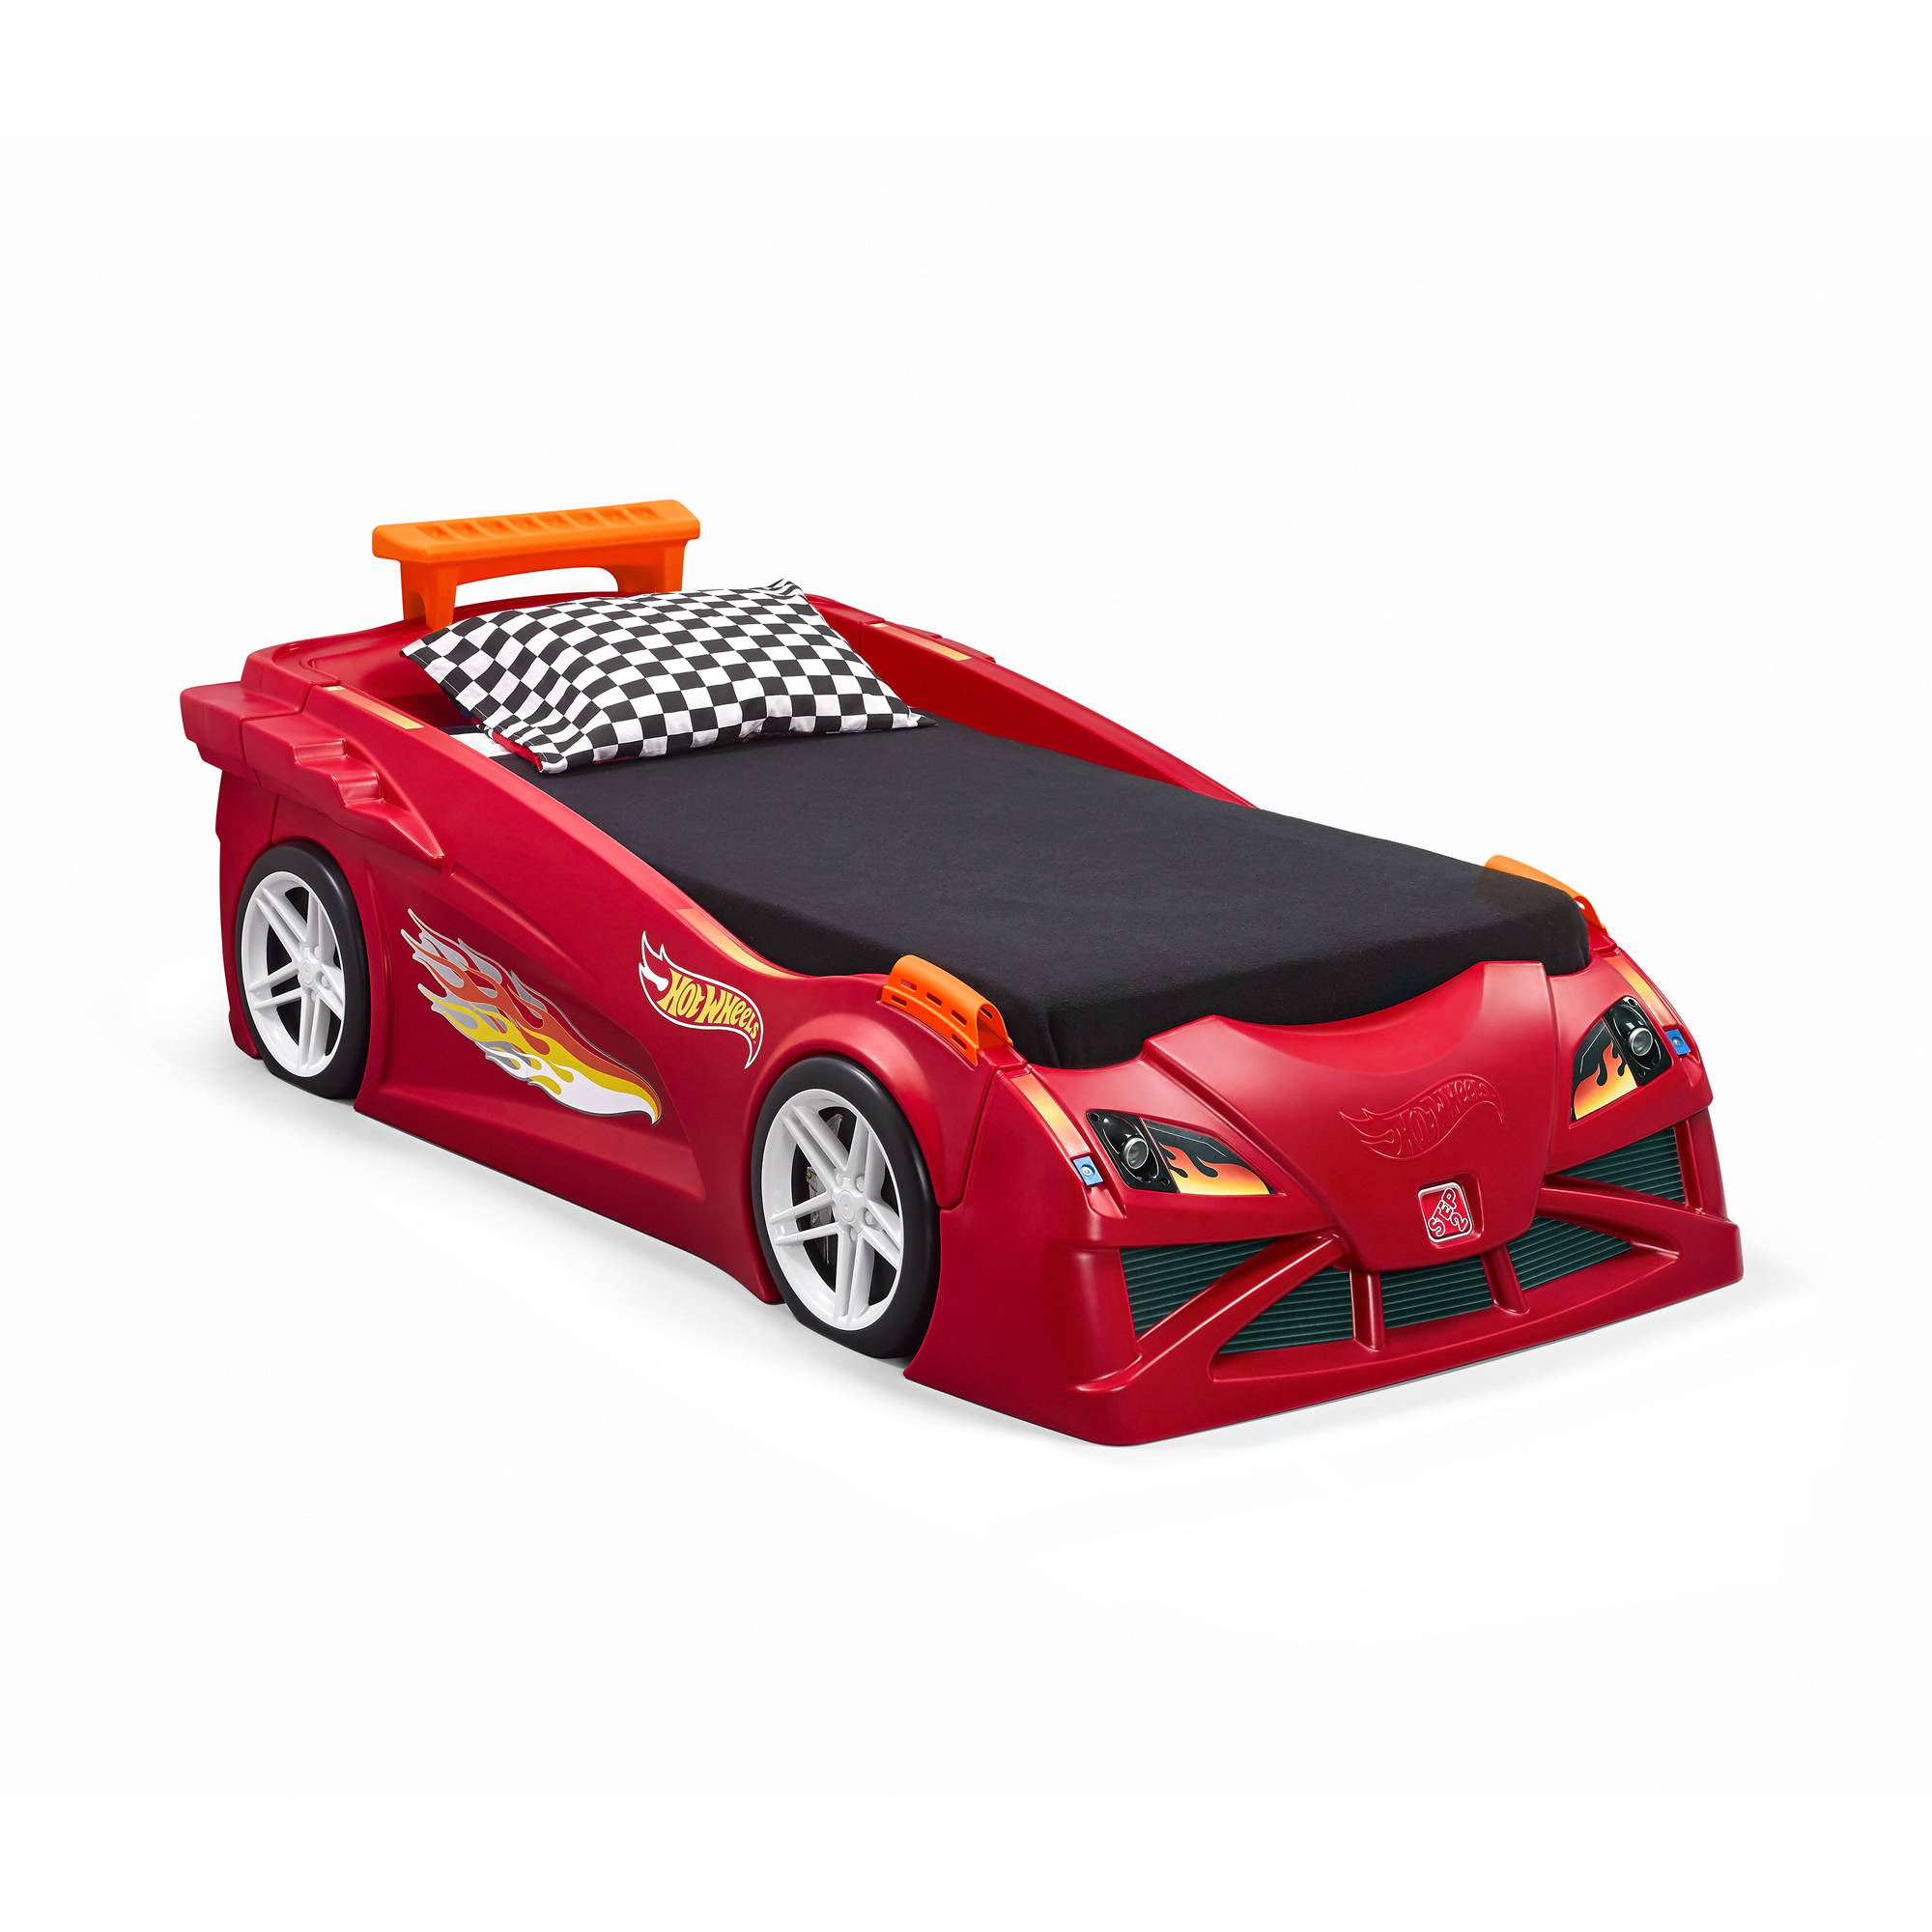 Car beds for boys twin - Car Beds For Boys Twin 7